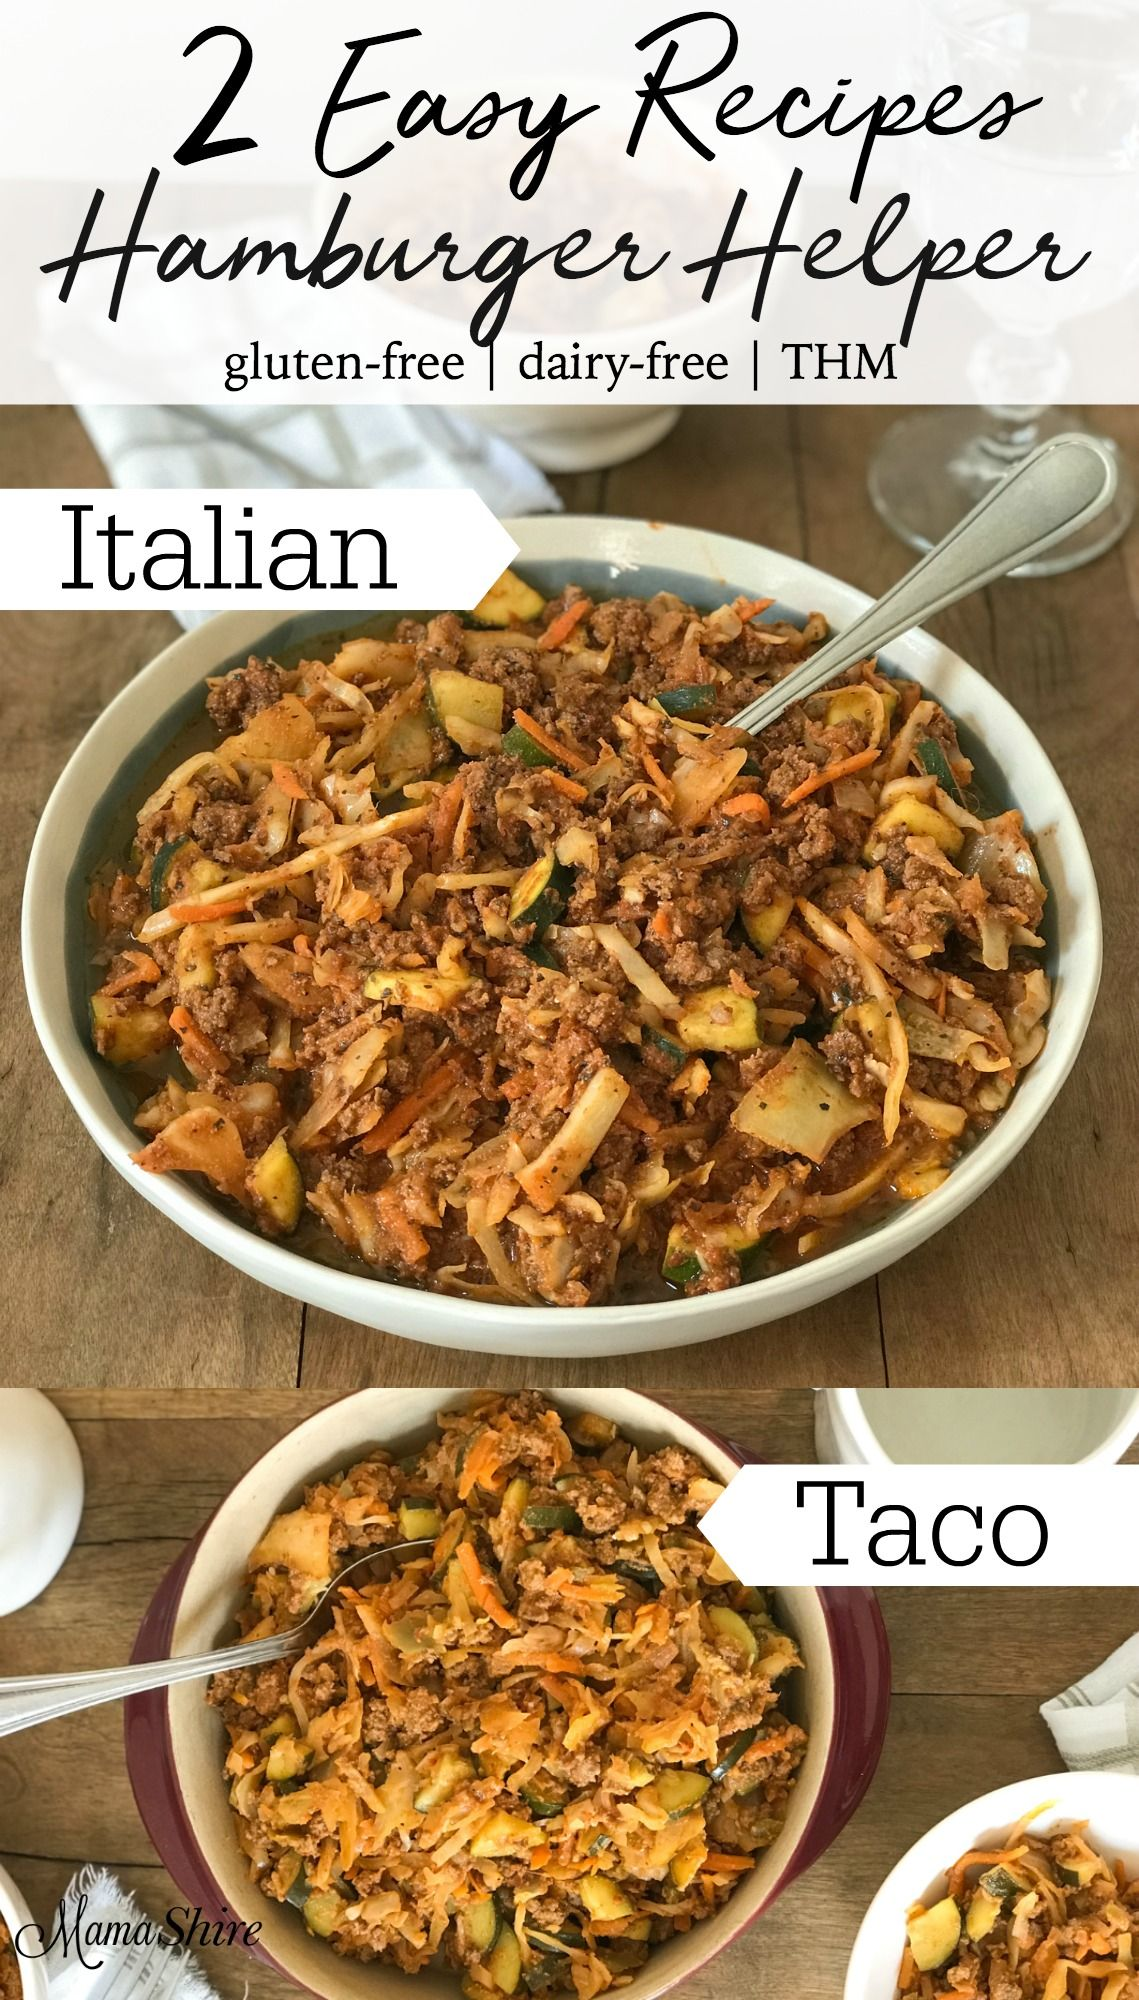 Easy Homemade Hamburger Helper Italian Taco Gluten Free Dairy Free Mamashire Recipe Ground Beef Recipes For Dinner Homemade Hamburgers Beef Recipes For Dinner